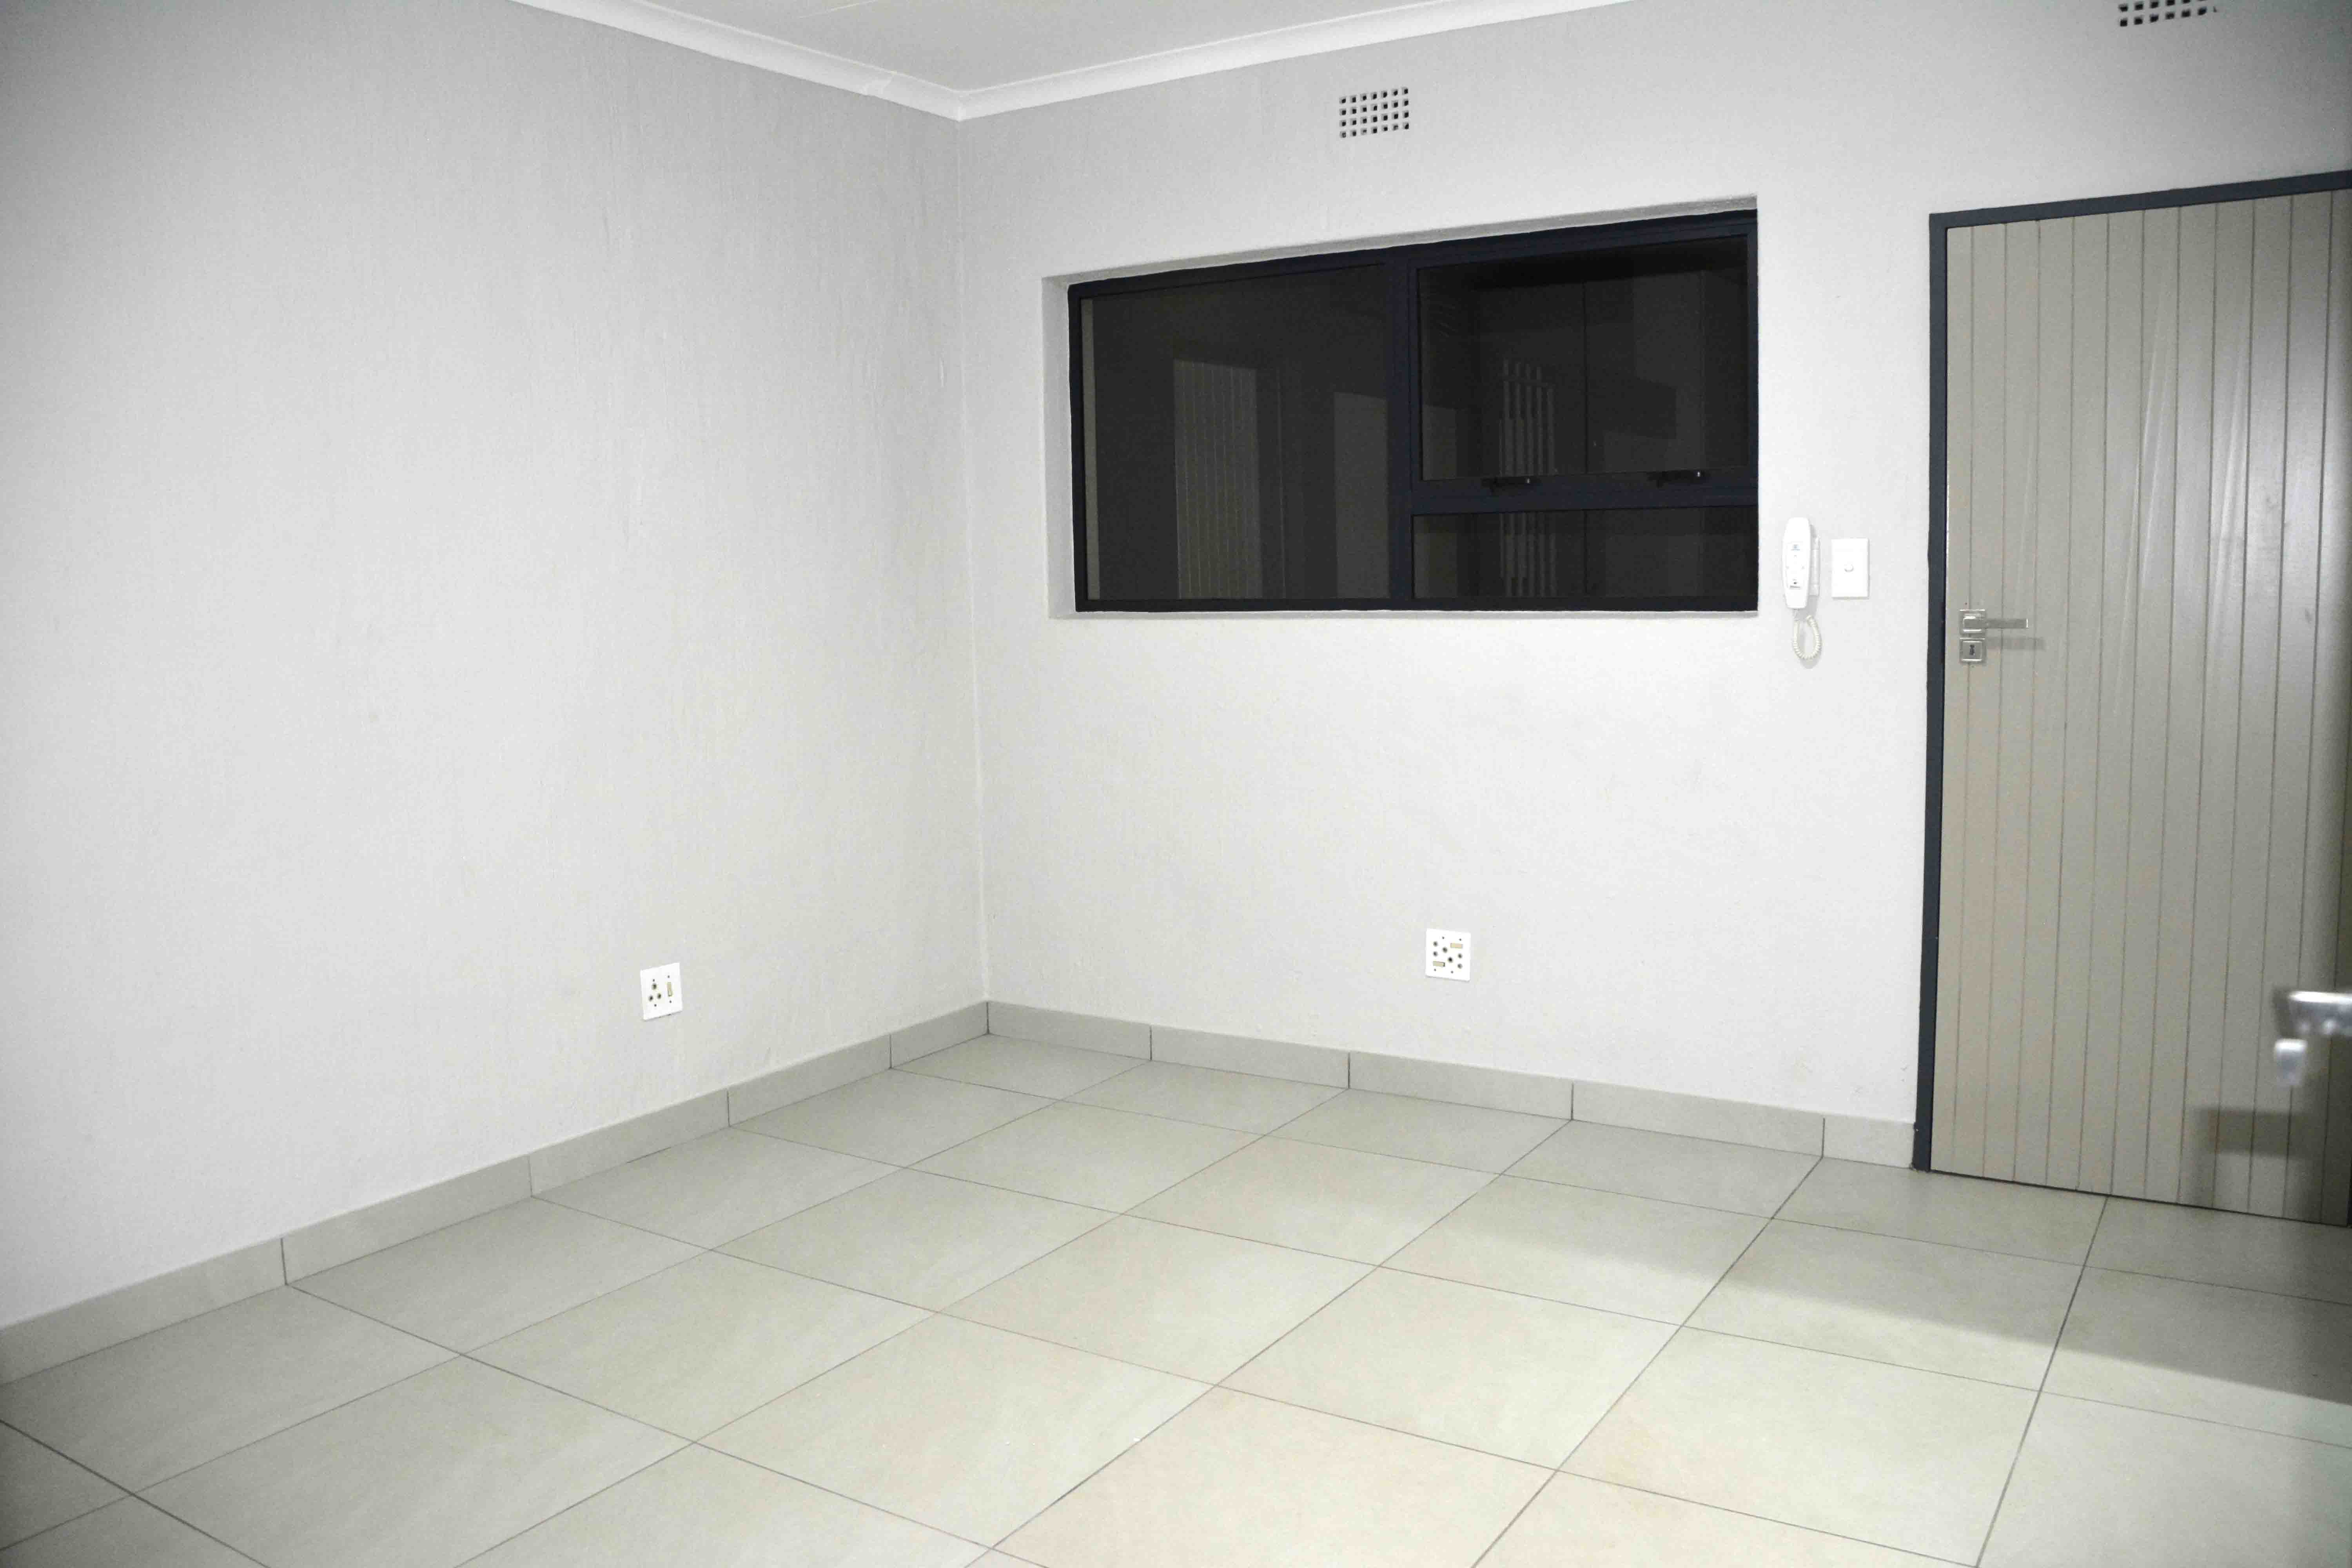 3 Bedroom House for sale in Alphen Park ENT0024465 : photo#19